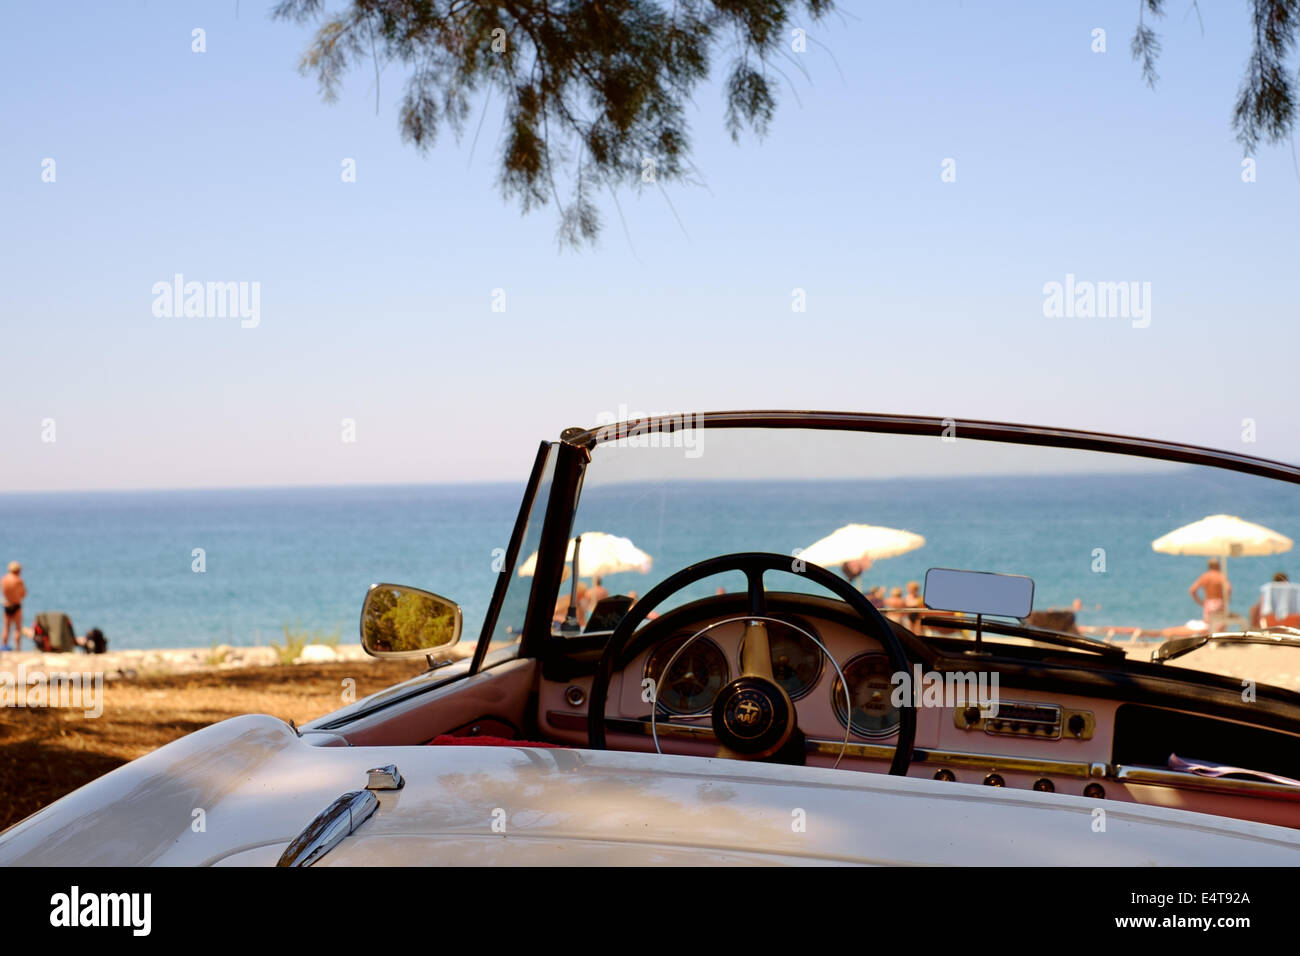 Classic Convertible Open Top White Alfa Romeo Sports Car   Parked At A  Beach   Mani